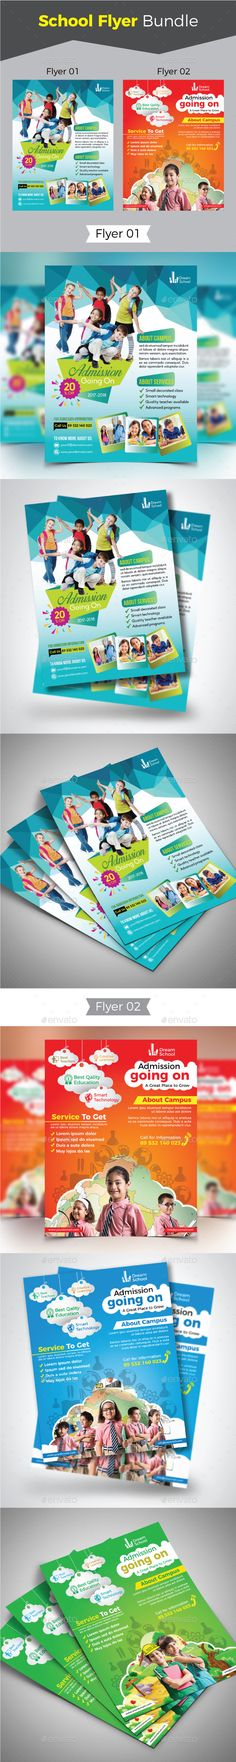 School Flyer Template Bundle - Vector EPS, AI Illustrator